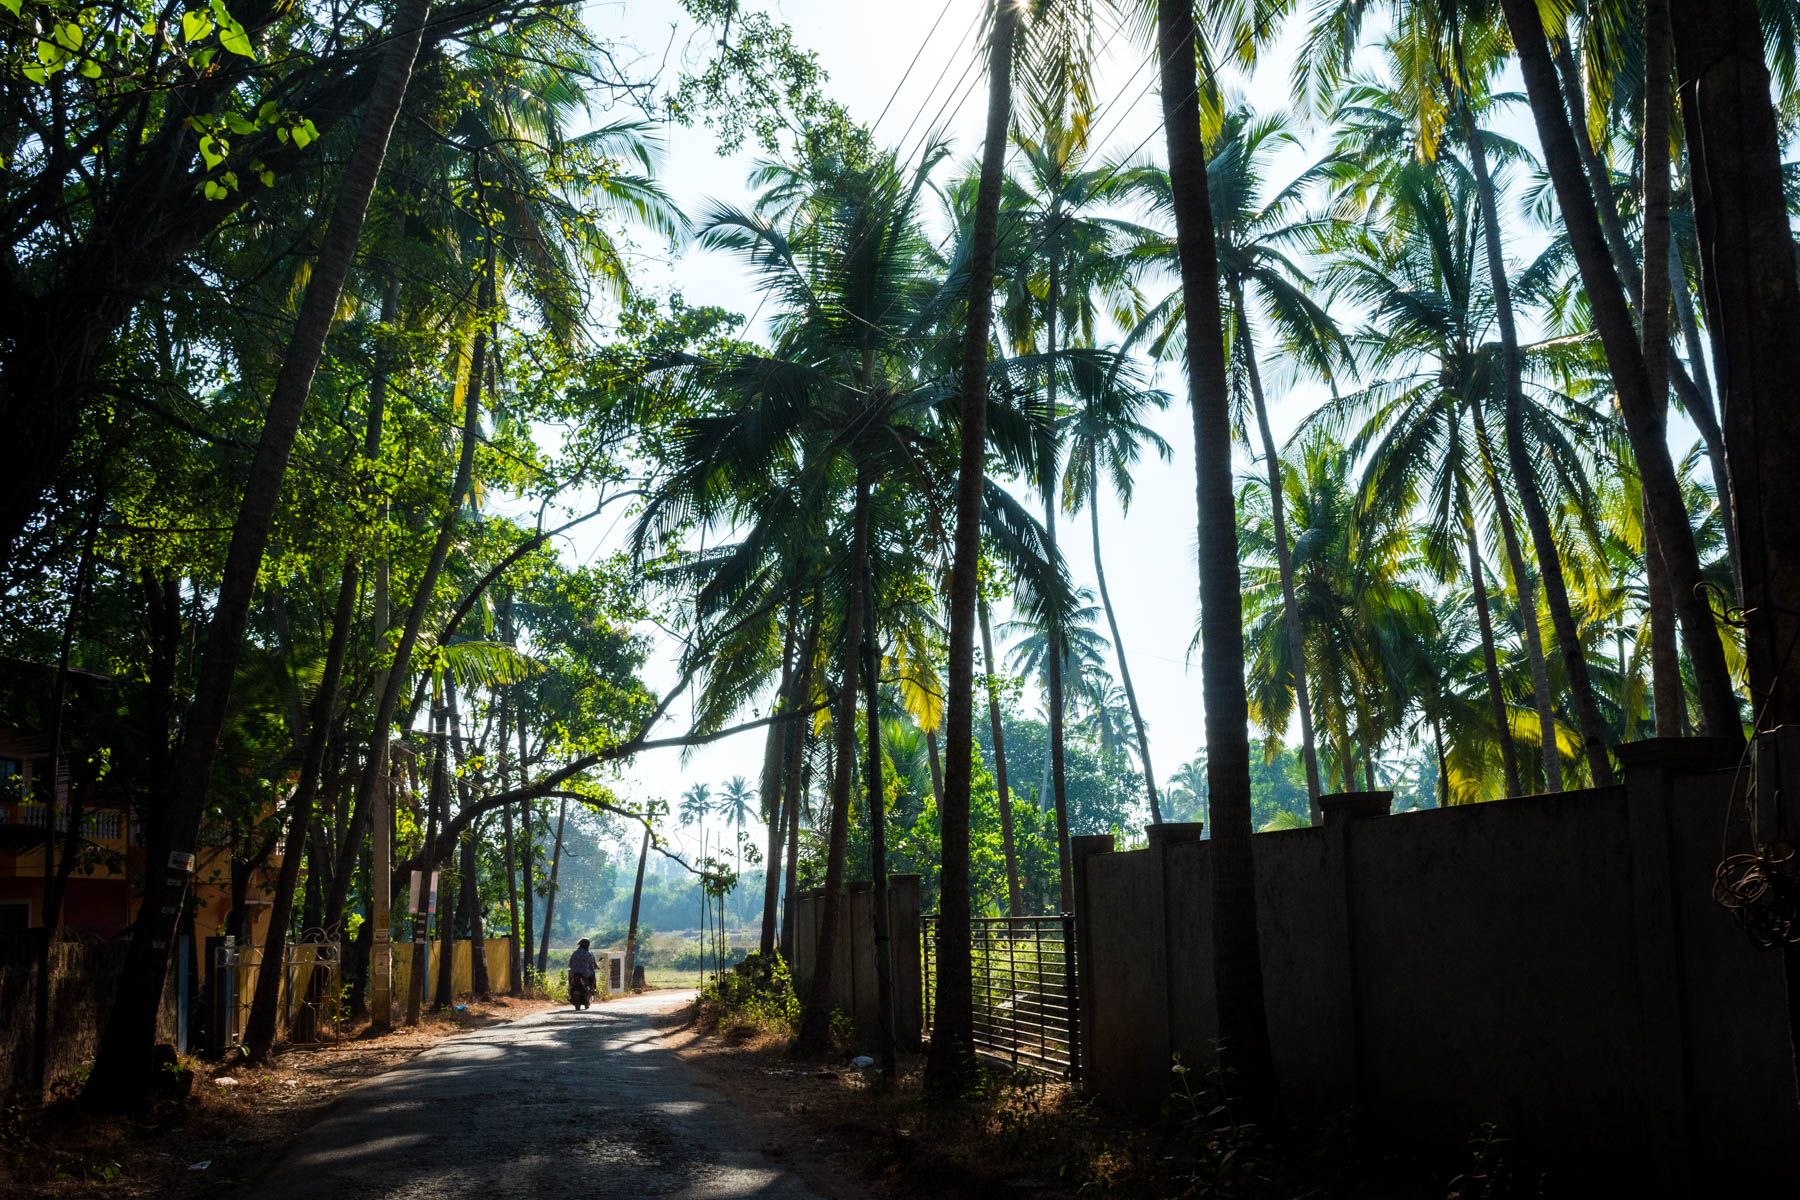 Motorbiking on Goa's winding, forested roads